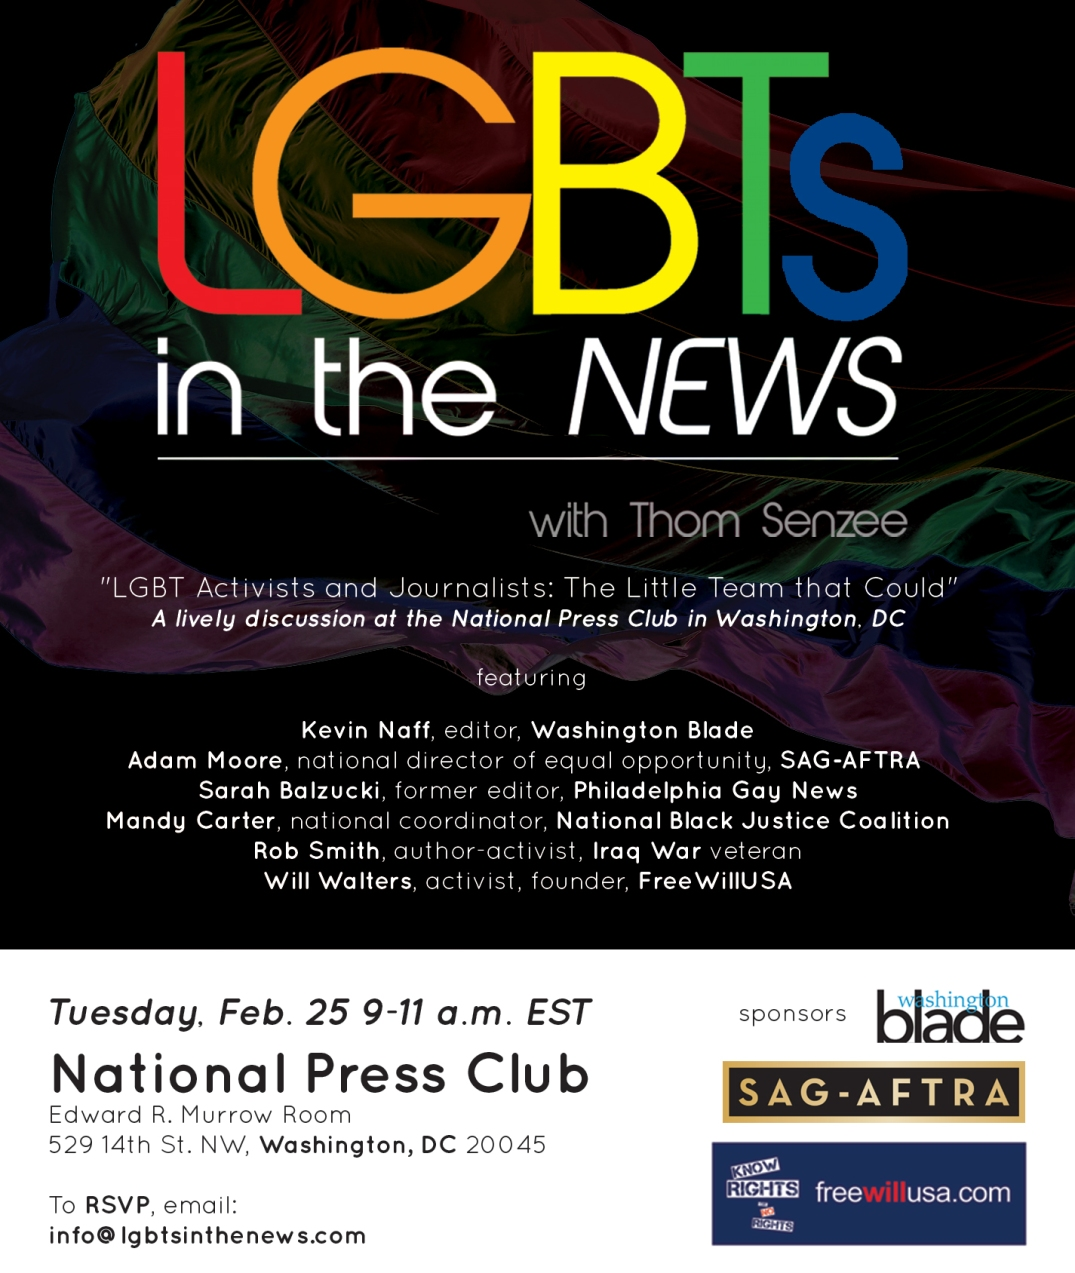 LGBTs In The News comes to the National Press Club in Washington, D.C., Feb. 25